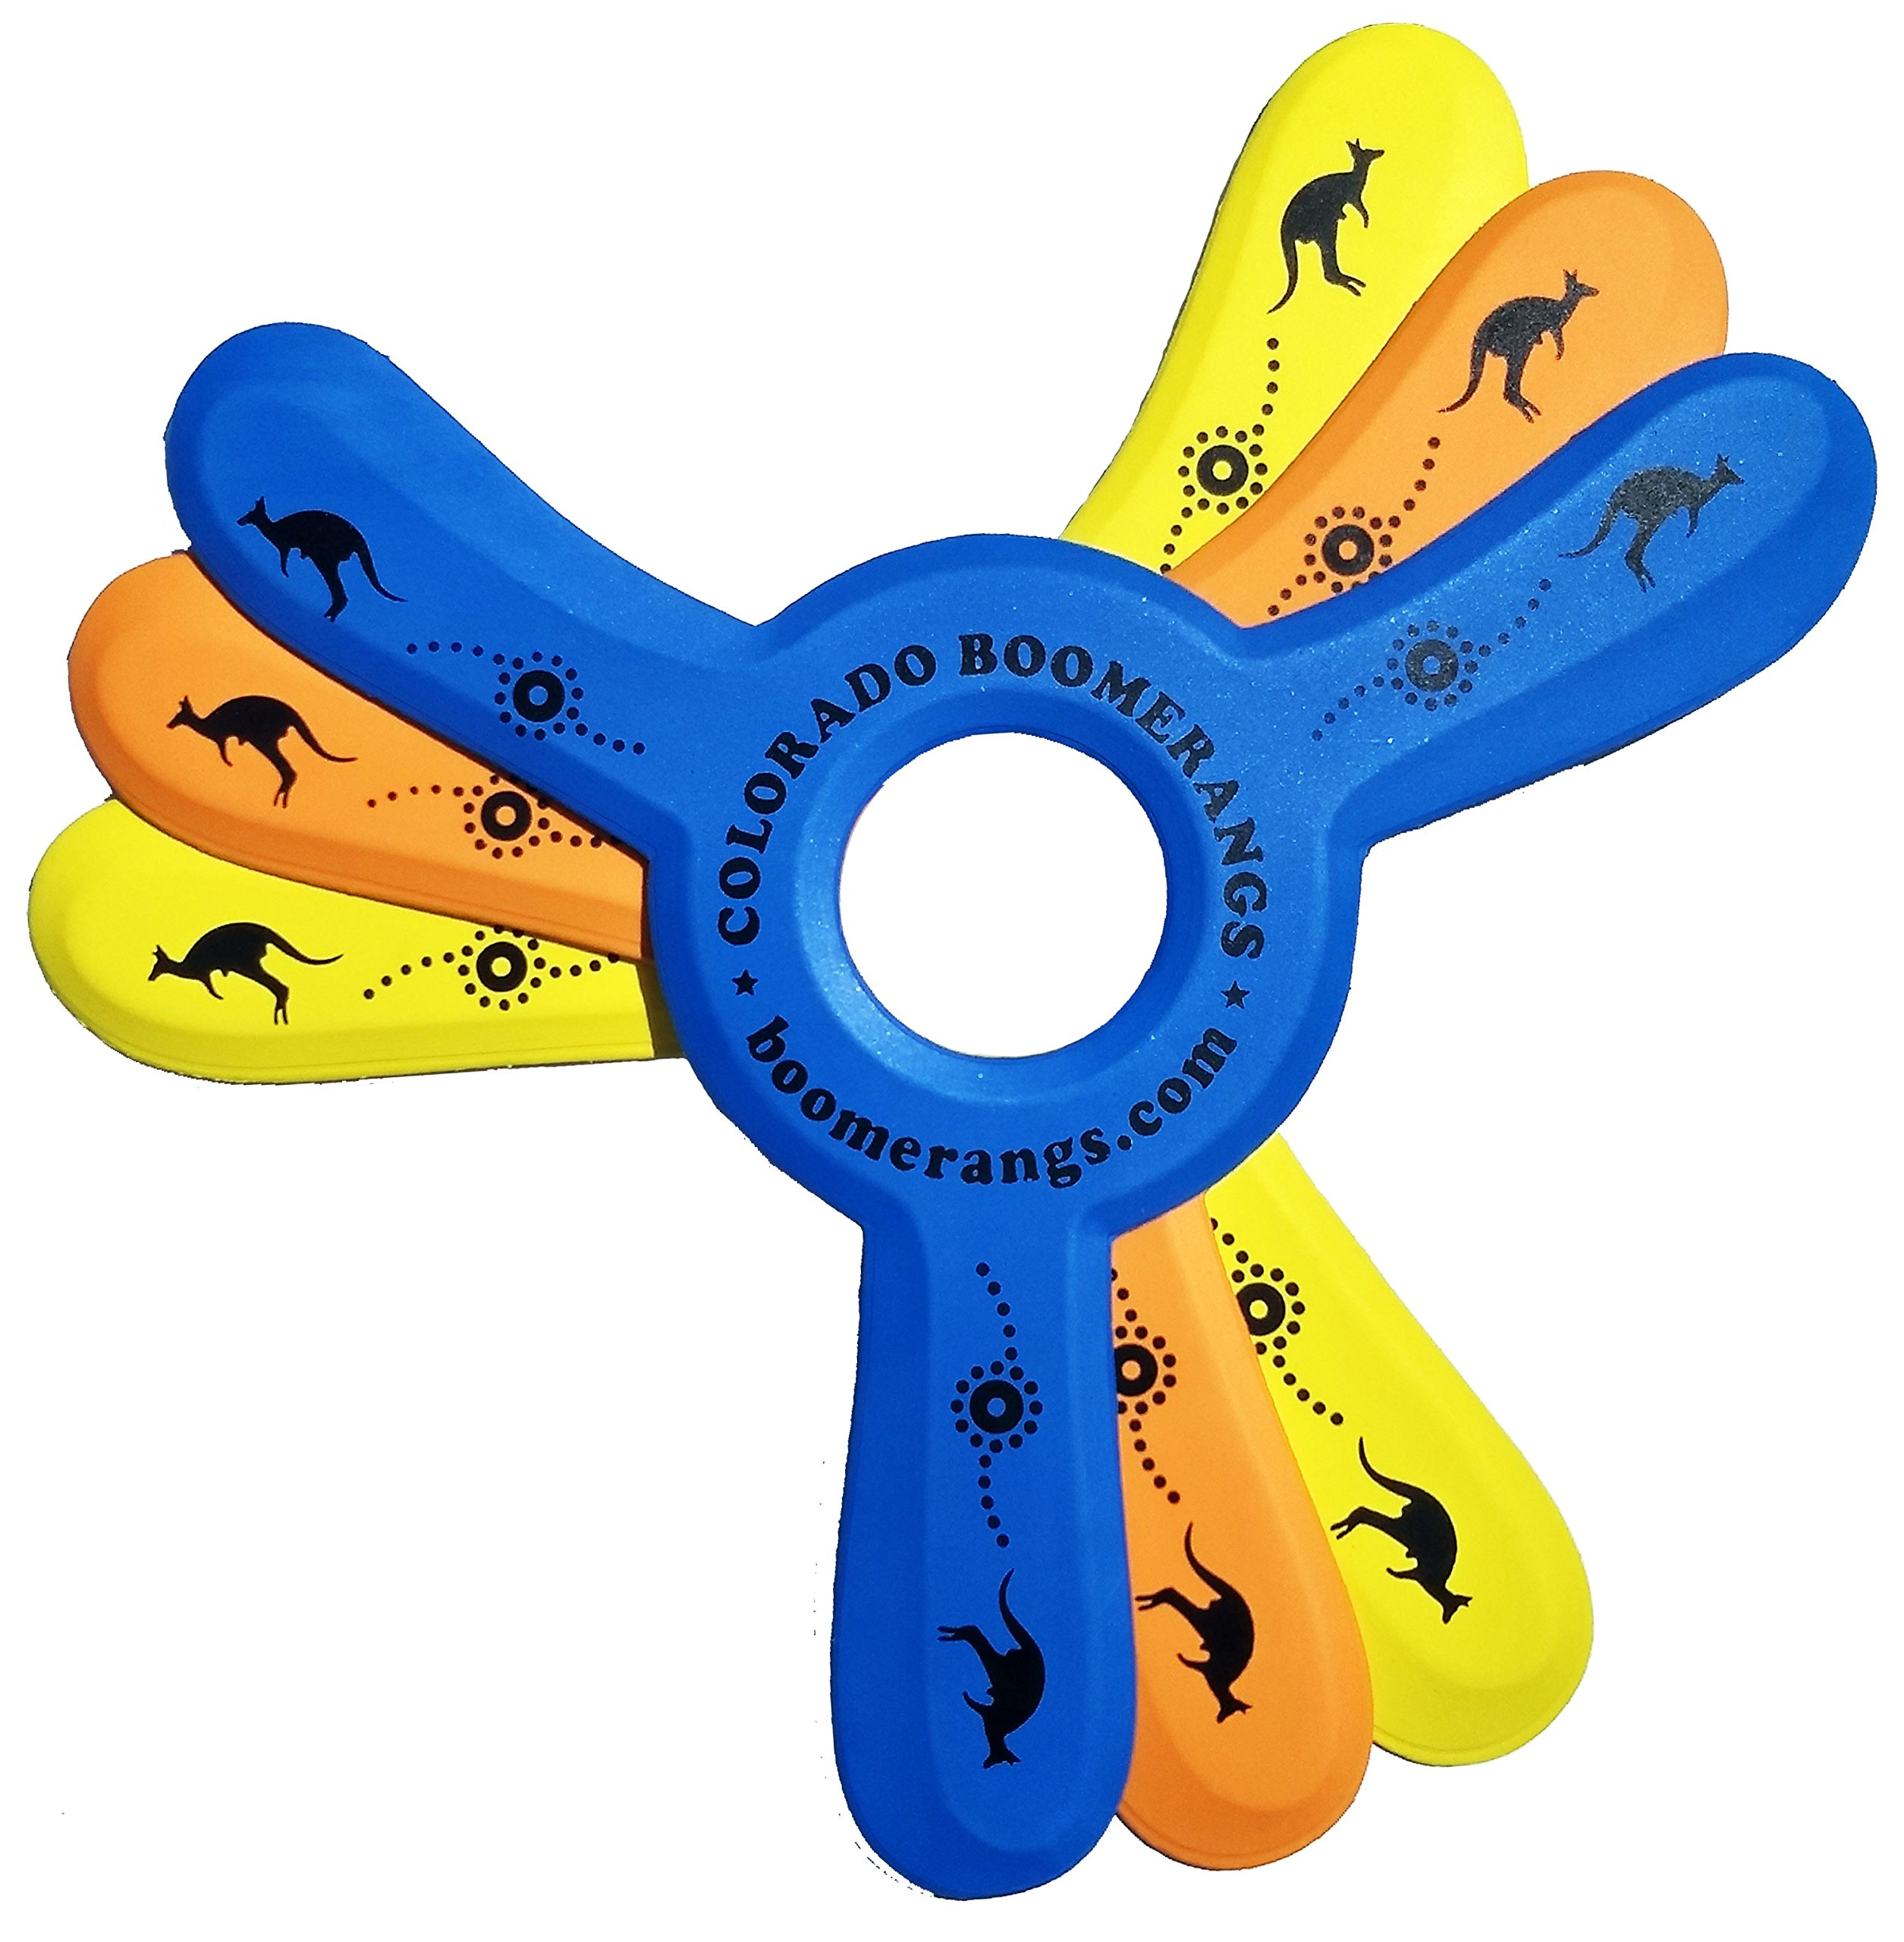 Kanga Boomerang 3 Pack, 3 Kids Boomerangs From Colorado Boomerangs! by Colorado Boomerangs